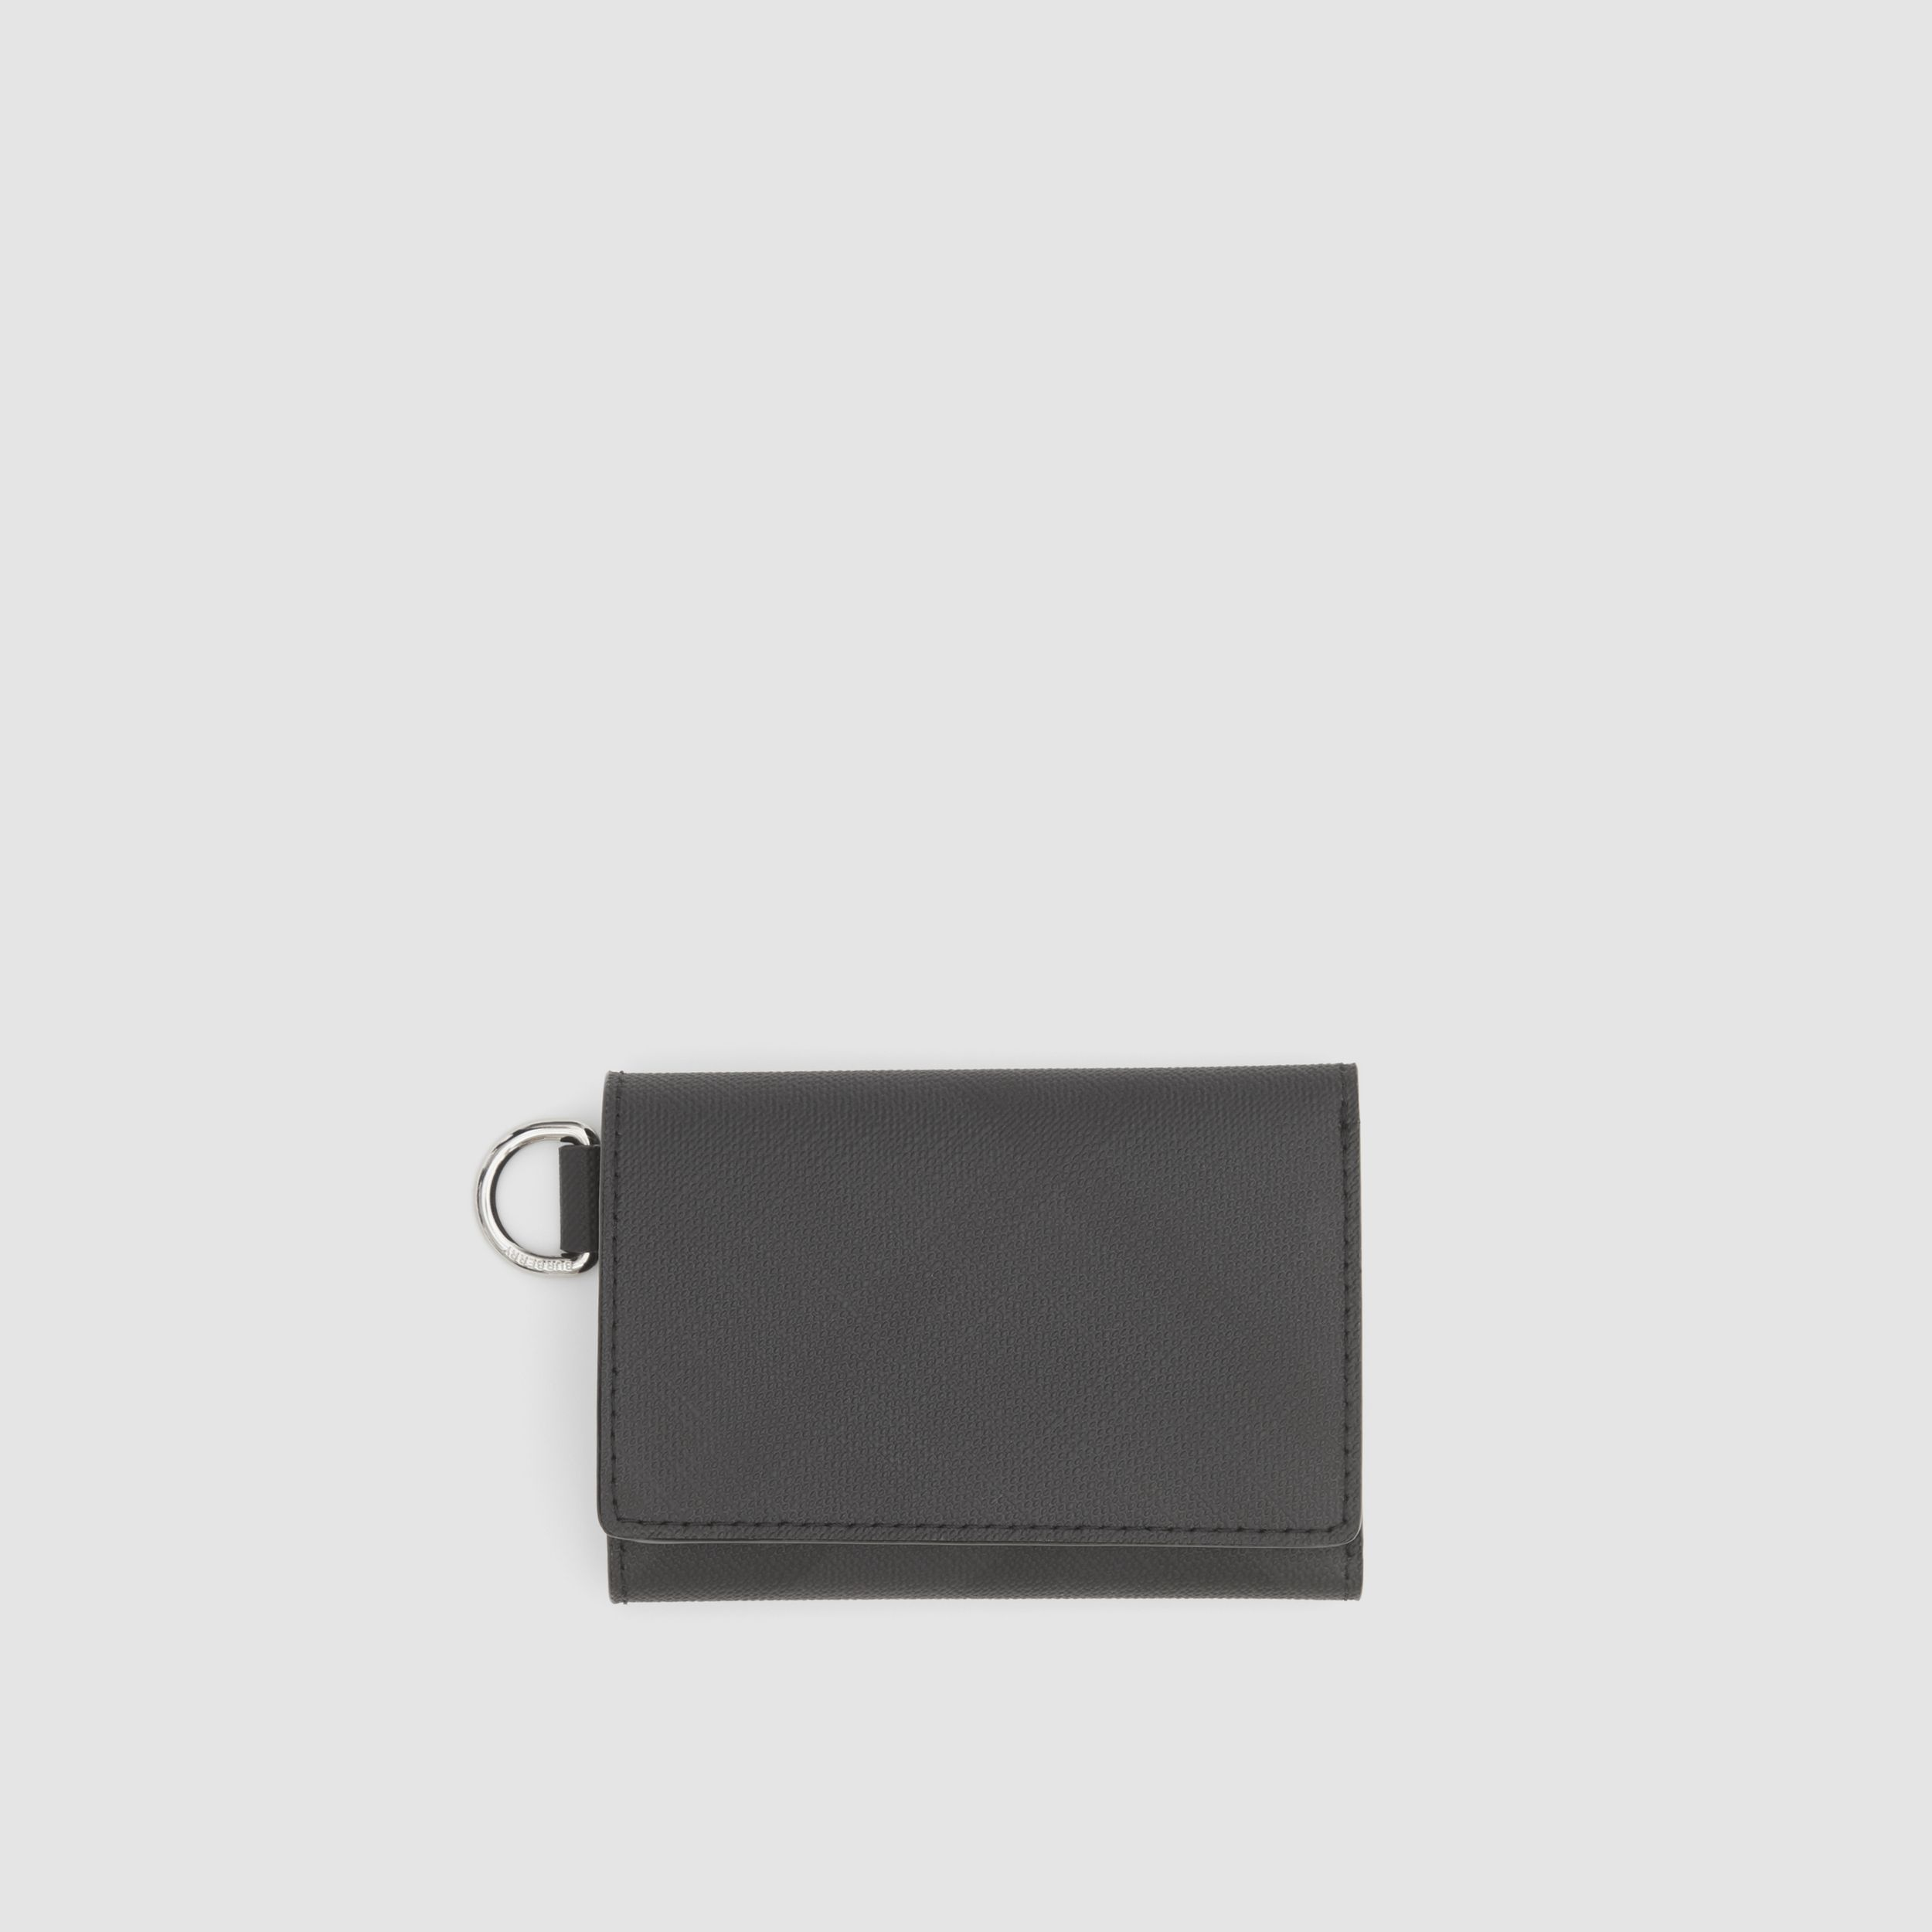 Small London Check Folding Wallet in Dark Charcoal - Men | Burberry - 1